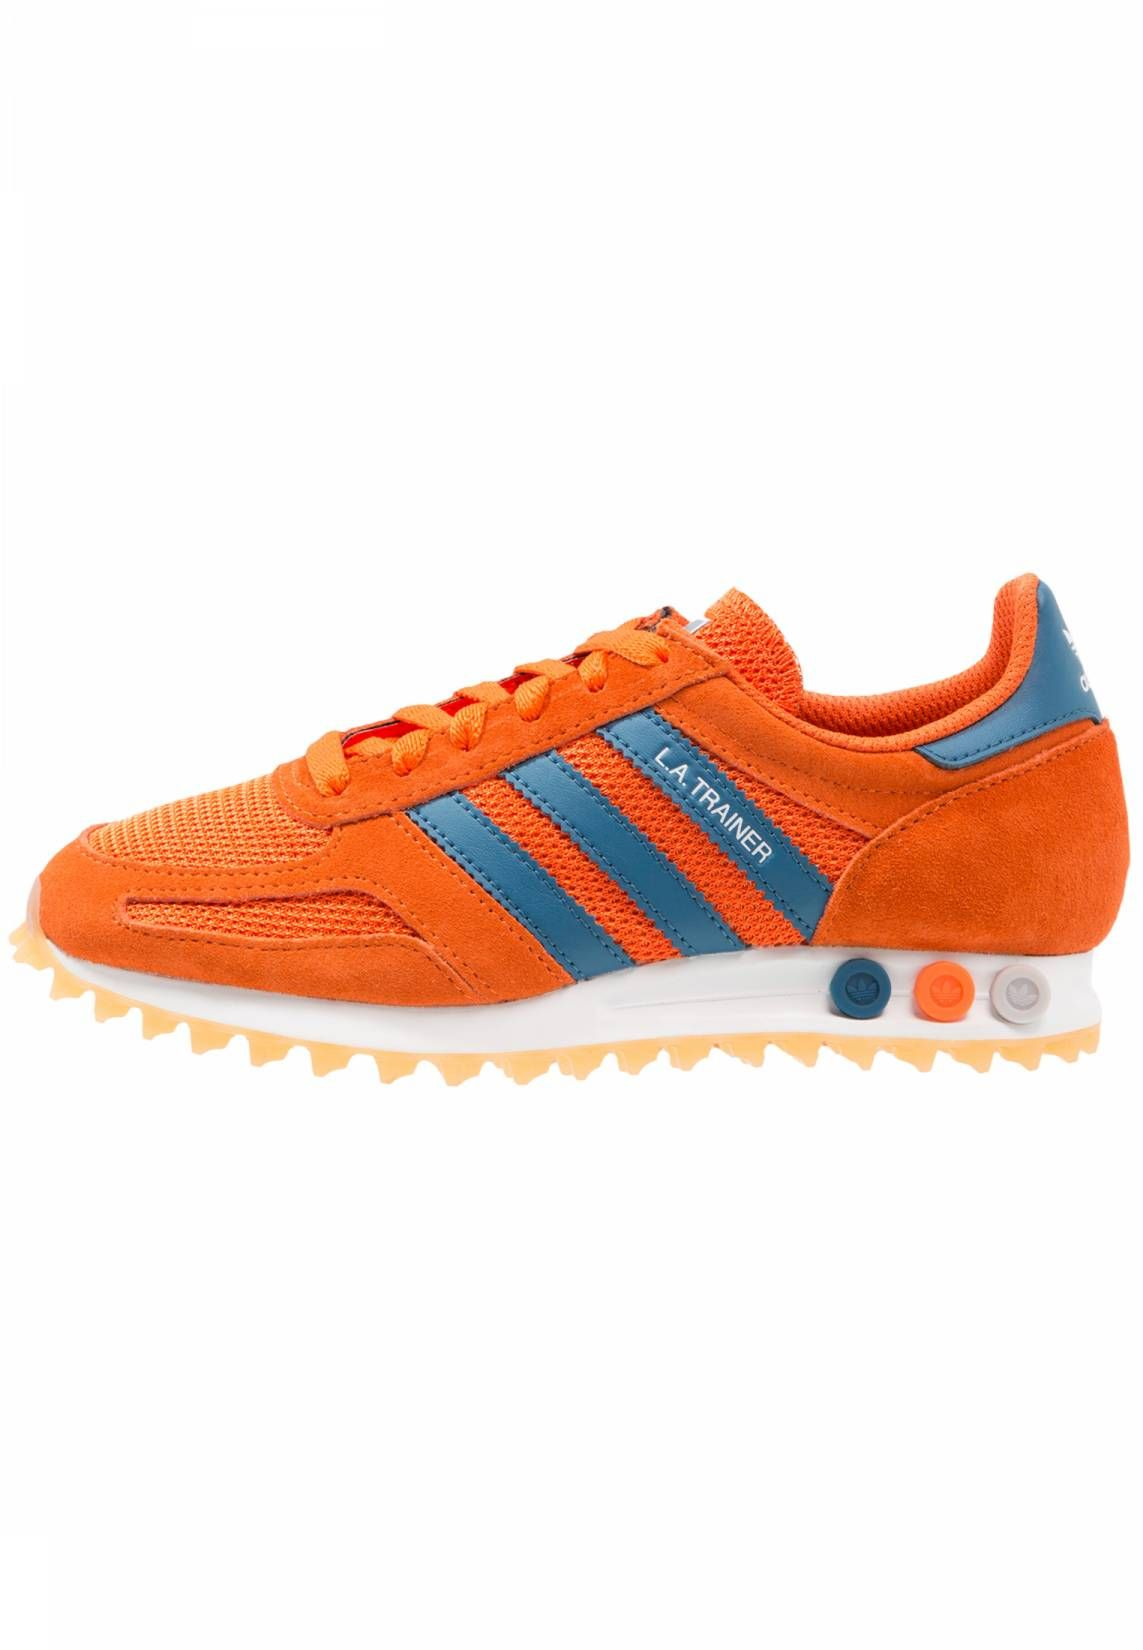 online retailer bd832 96f70 adidas Originals. LA TRAINER OG - Trainers - orange noble teal footwear  white. Care instructions treat with a suitable protector before wear.